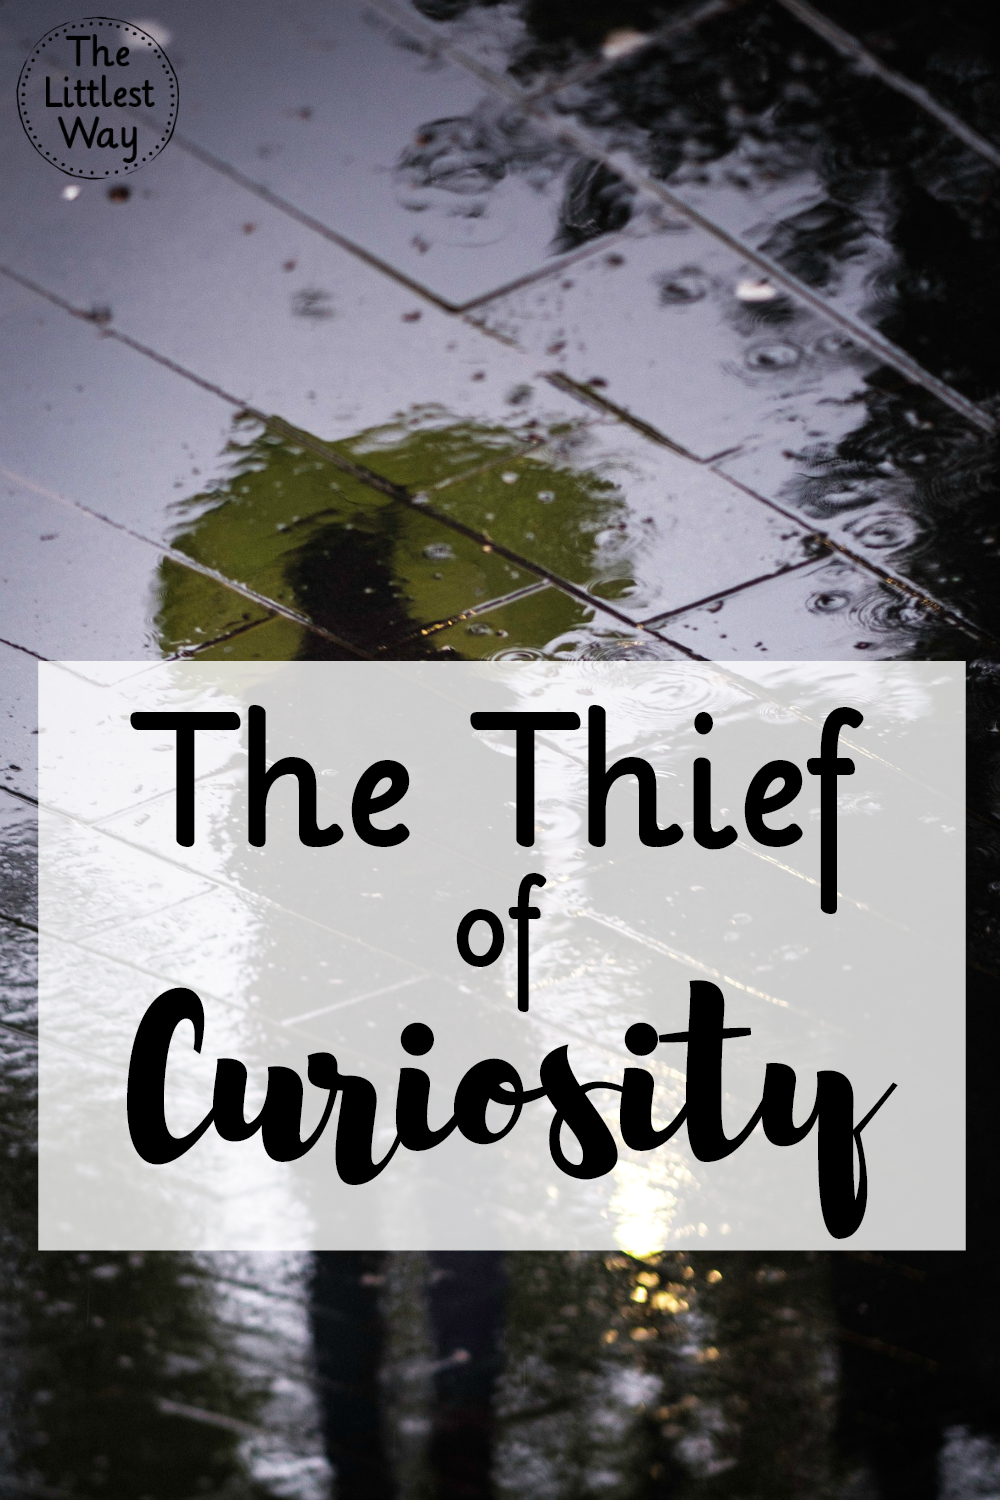 Curiosity is a thief that only comes to kill, steal, and destroy. Sound familiar? Sounds like a tactic of the enemy to me.